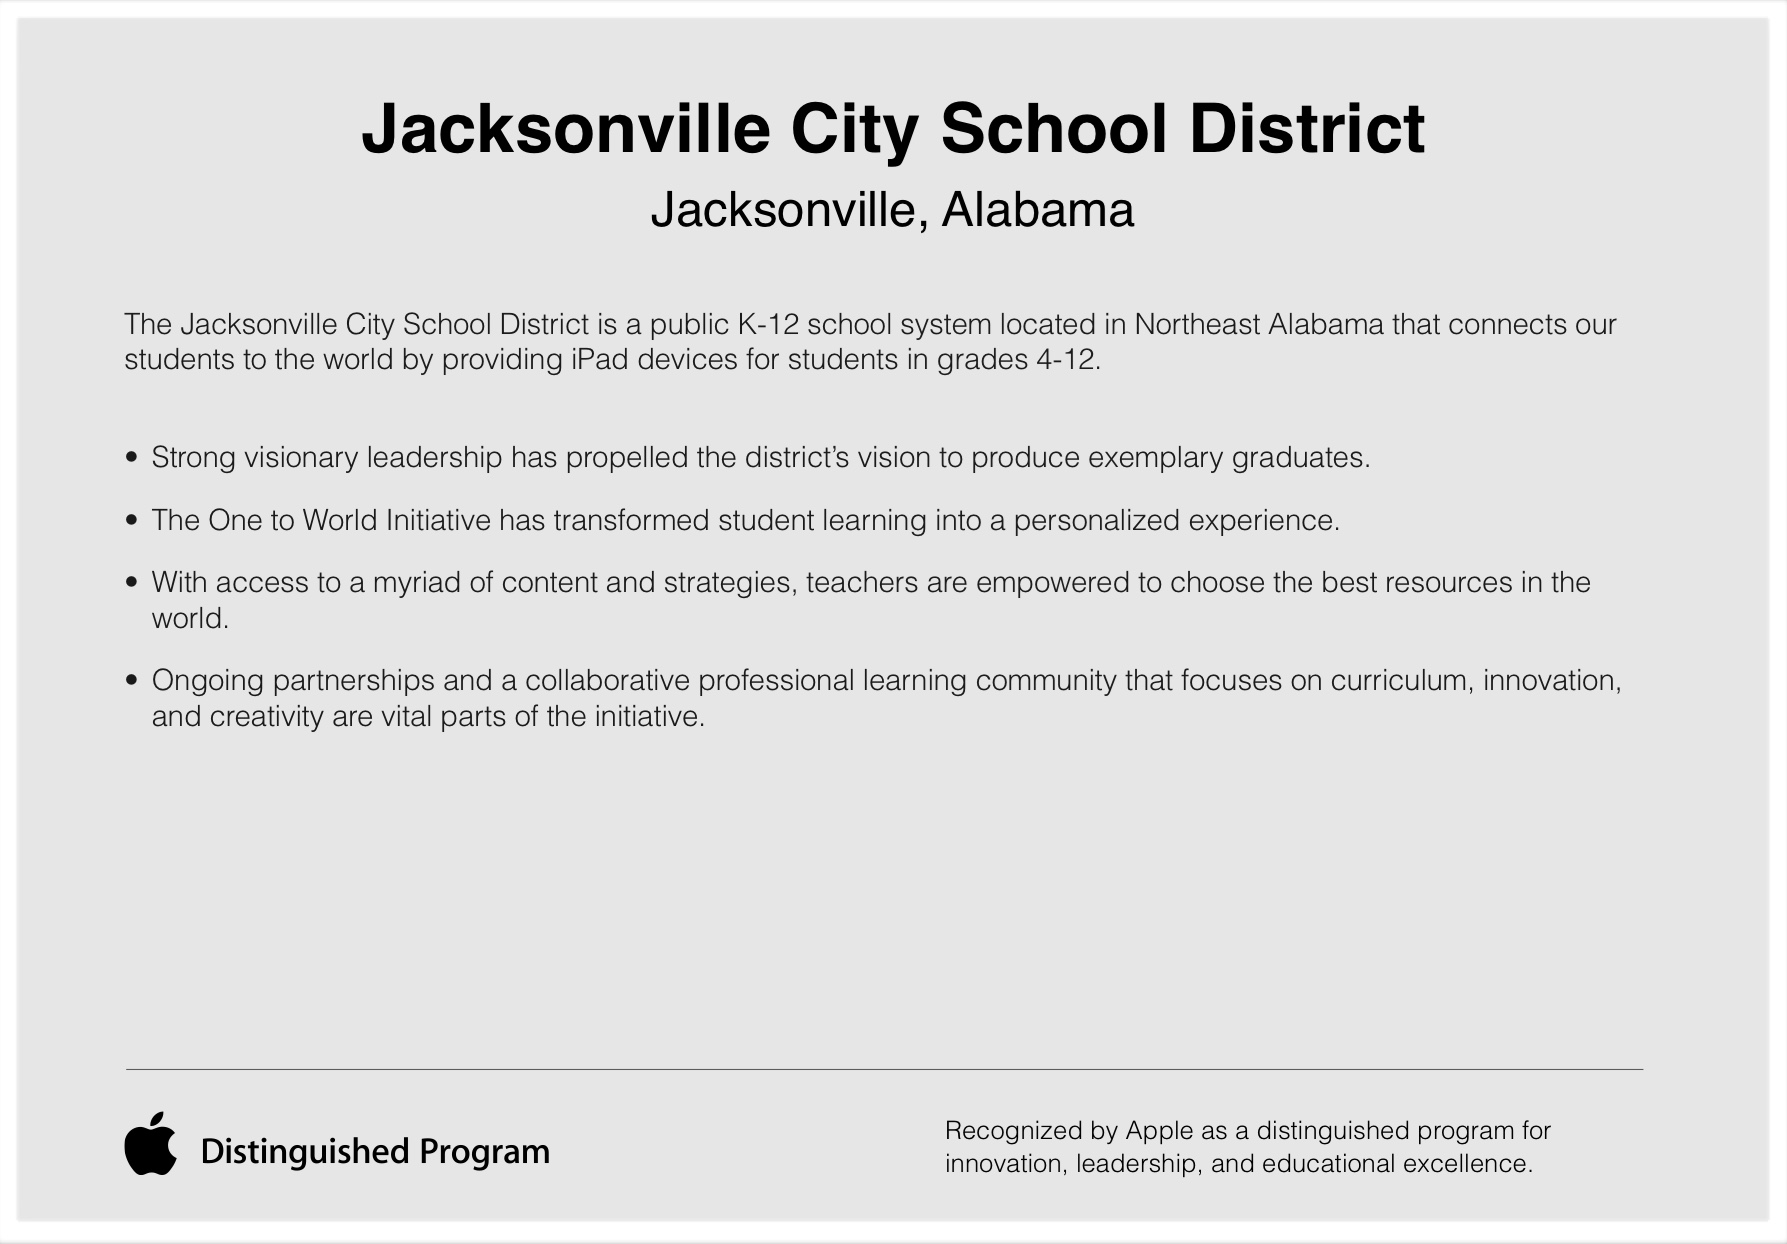 Jacksonville City School District